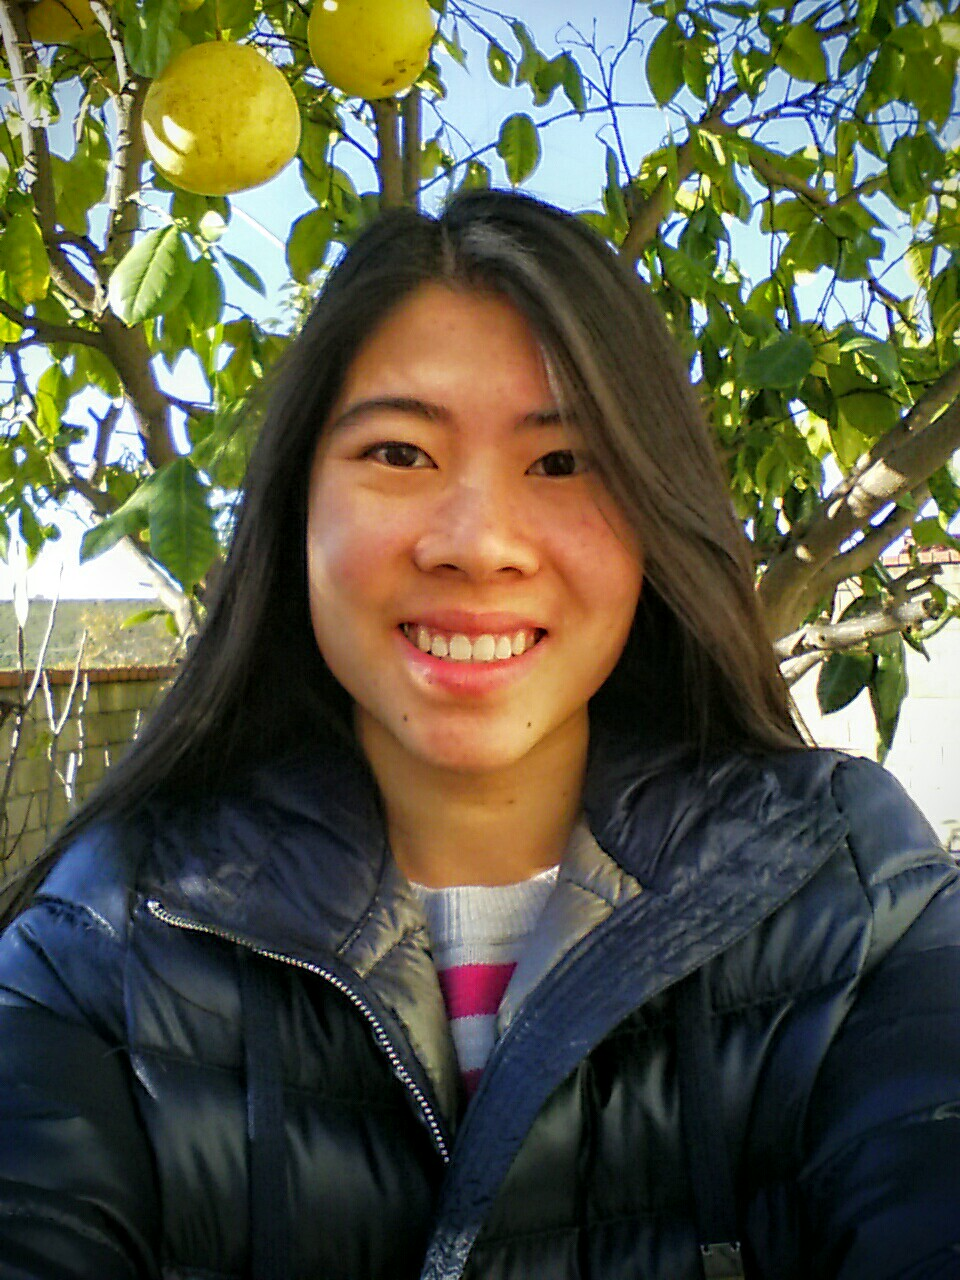 Karen Tom - Time in lab: SP 16-SP 18Studied: Alkali metal potential battery materialsCurrently in pharmacy school at USC